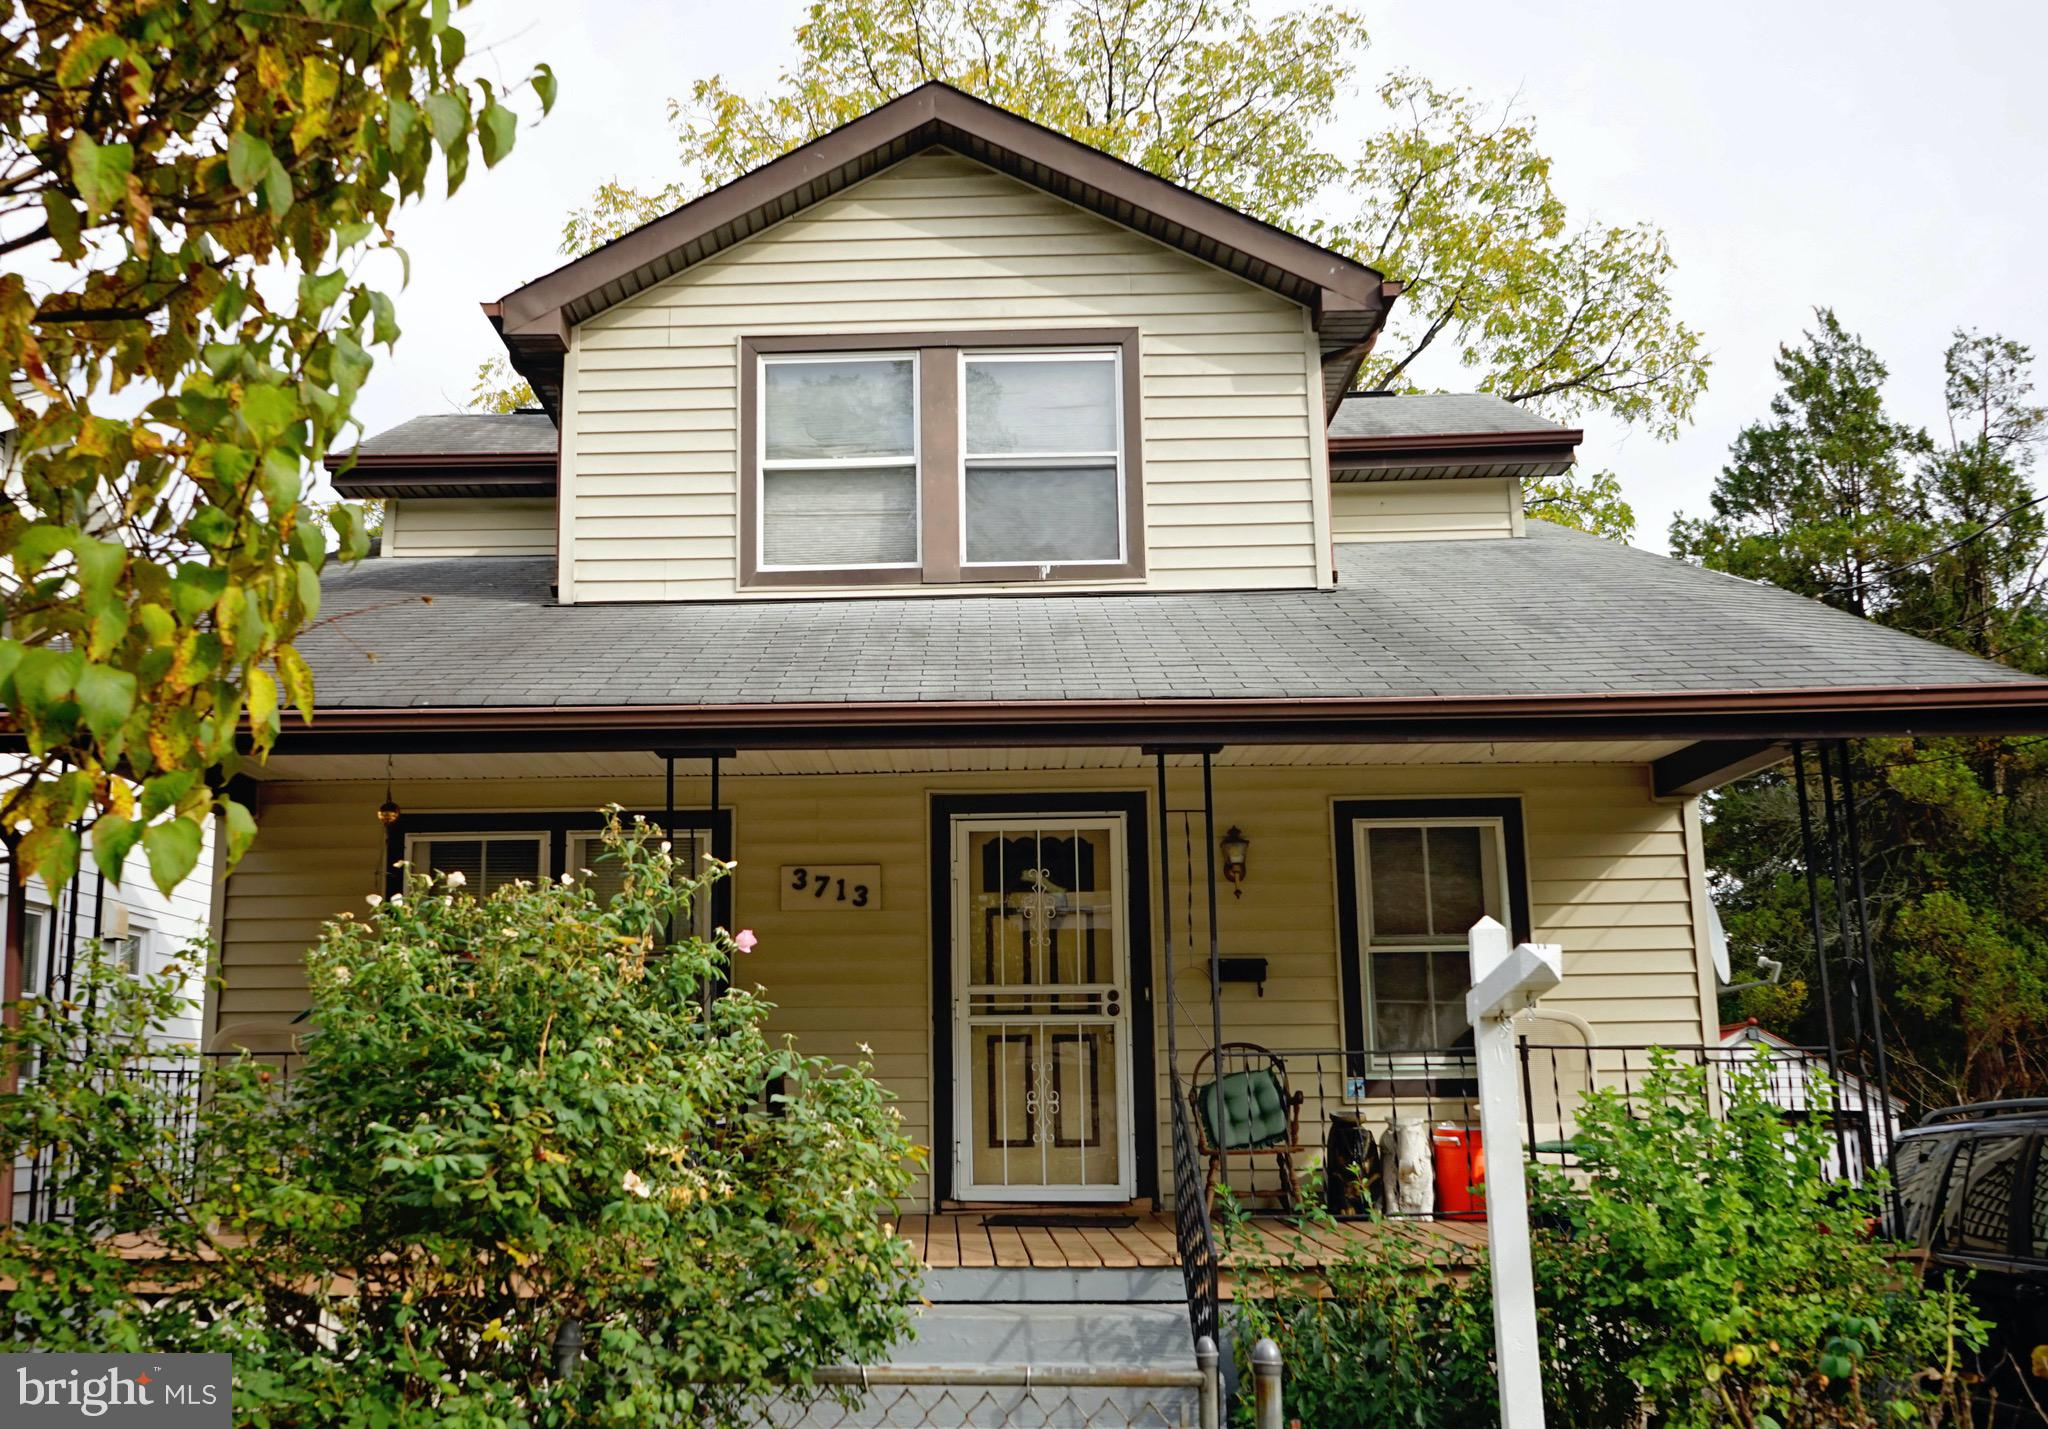 3713 43RD AVENUE, BRENTWOOD, MD 20722